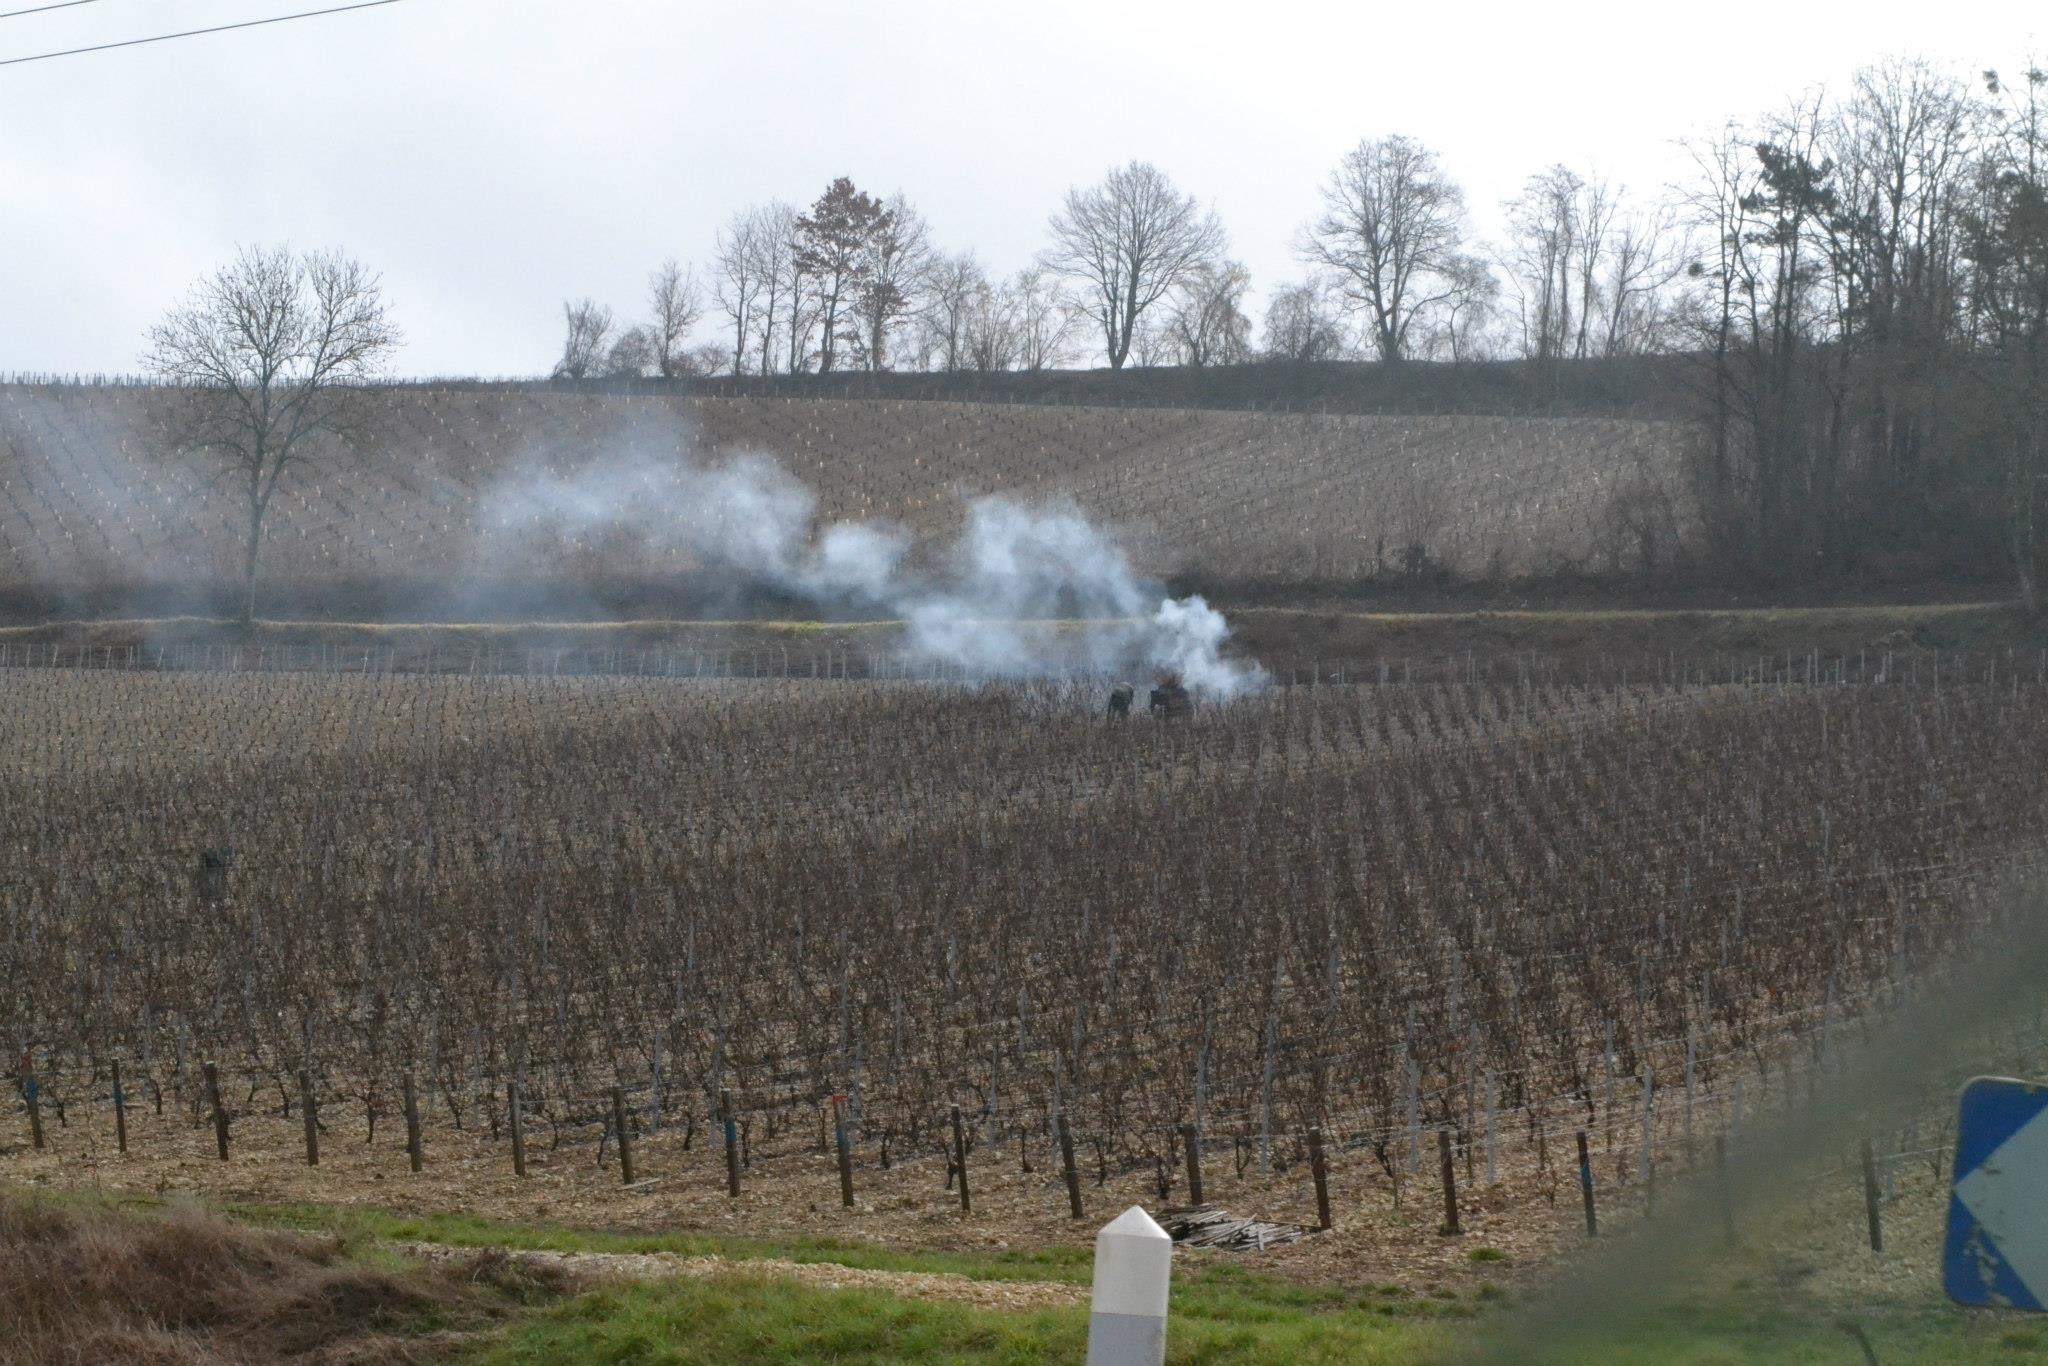 Pruning and burning the vine branches in March.